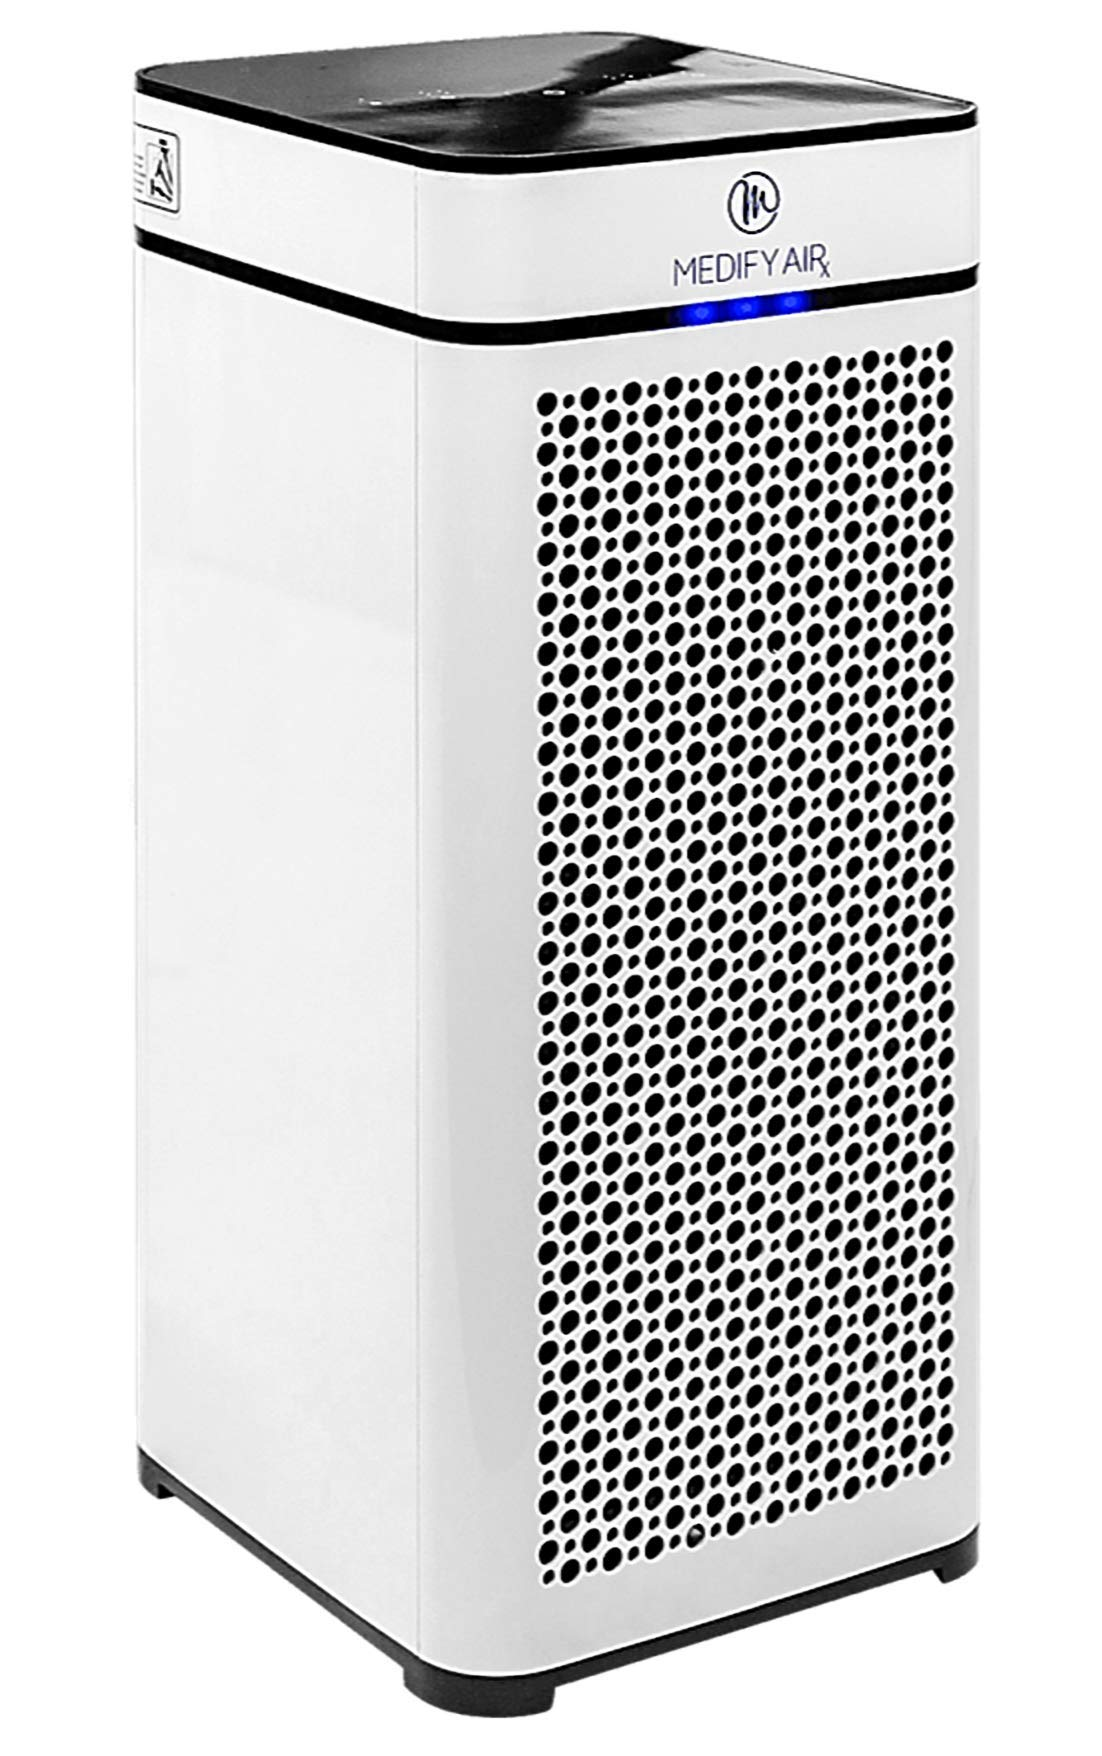 Medify MA-40 Home Medical Grade H13 True HEPA for 800 Sq. Ft. Air Purifier, 99.97% removal with Particle Sensor and Modern Design - White by Medify Air